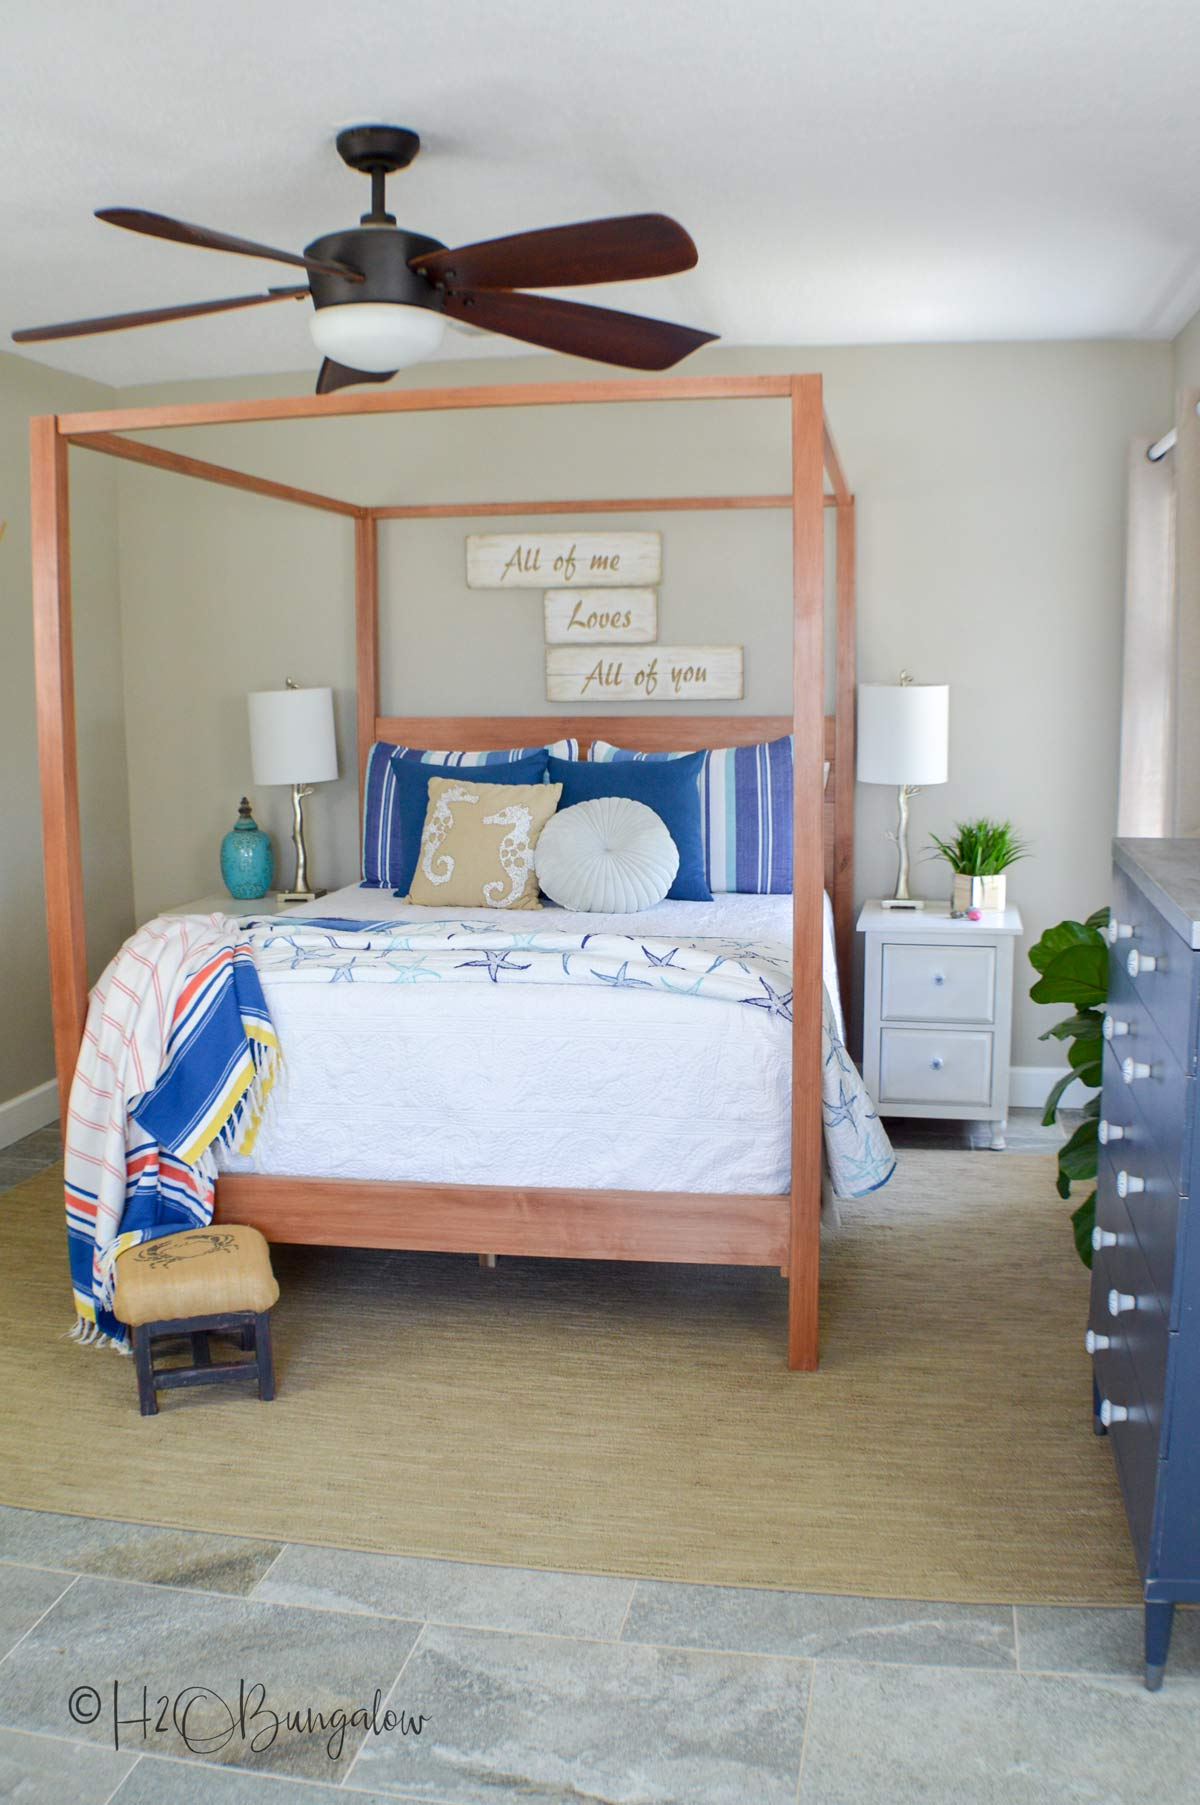 Beautiful DIY queen bed plans to build this bed. Download free plans and tutorial